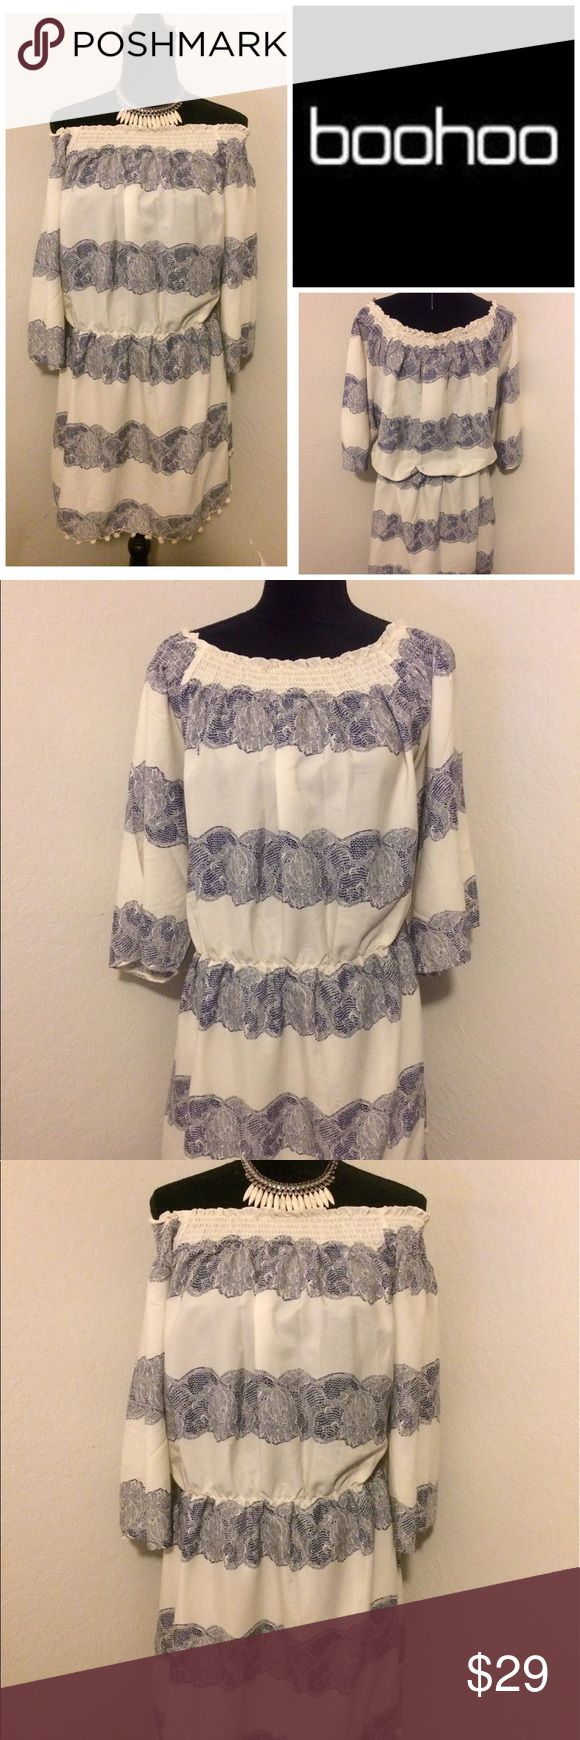 "NWT Boohoo Navy Cream Tunic Dress For sale: NWT navy blue and cream/white Boohoo boho chic off the shoulder pom pom dress/tunic. Elastic at the neckline and waist for stretch and comfort. Pom pom details at the hem. Waist: approximately 40 (unstretched). Pit to pit: approximately 25"". Length: approximately 34"". Note: 1/8 snag at the bottom.  Barely recognizable. See last picture. Can be worn as a dress or tunic depending on style and comfortability. Interested? Like, share, bundle, buy…"